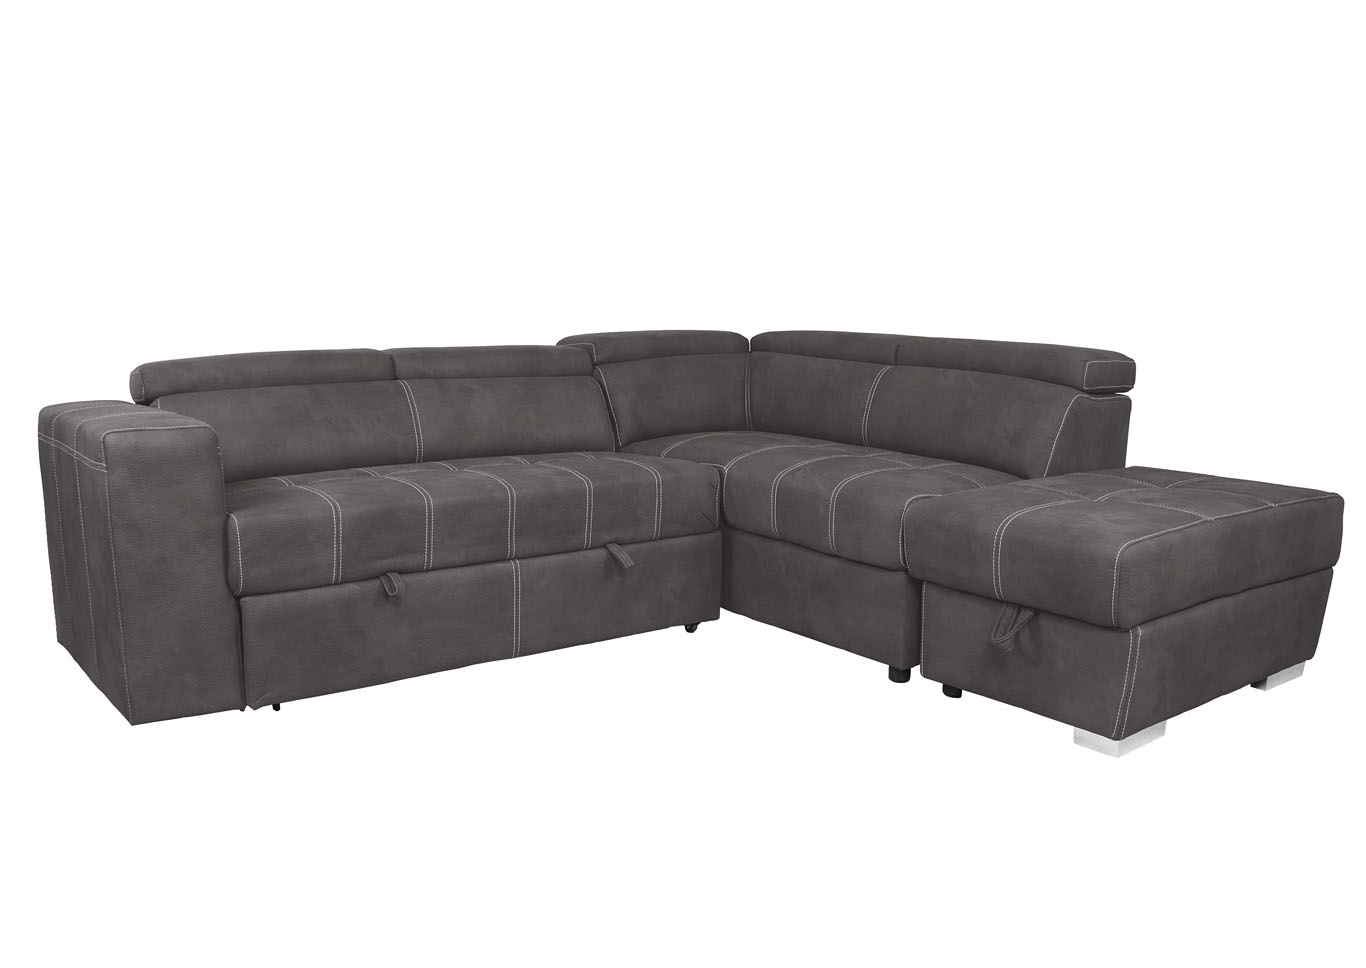 Abby Media Sectional with Pull Out Pop Up Ottoman and Moveable Storage Ottoman,Instore